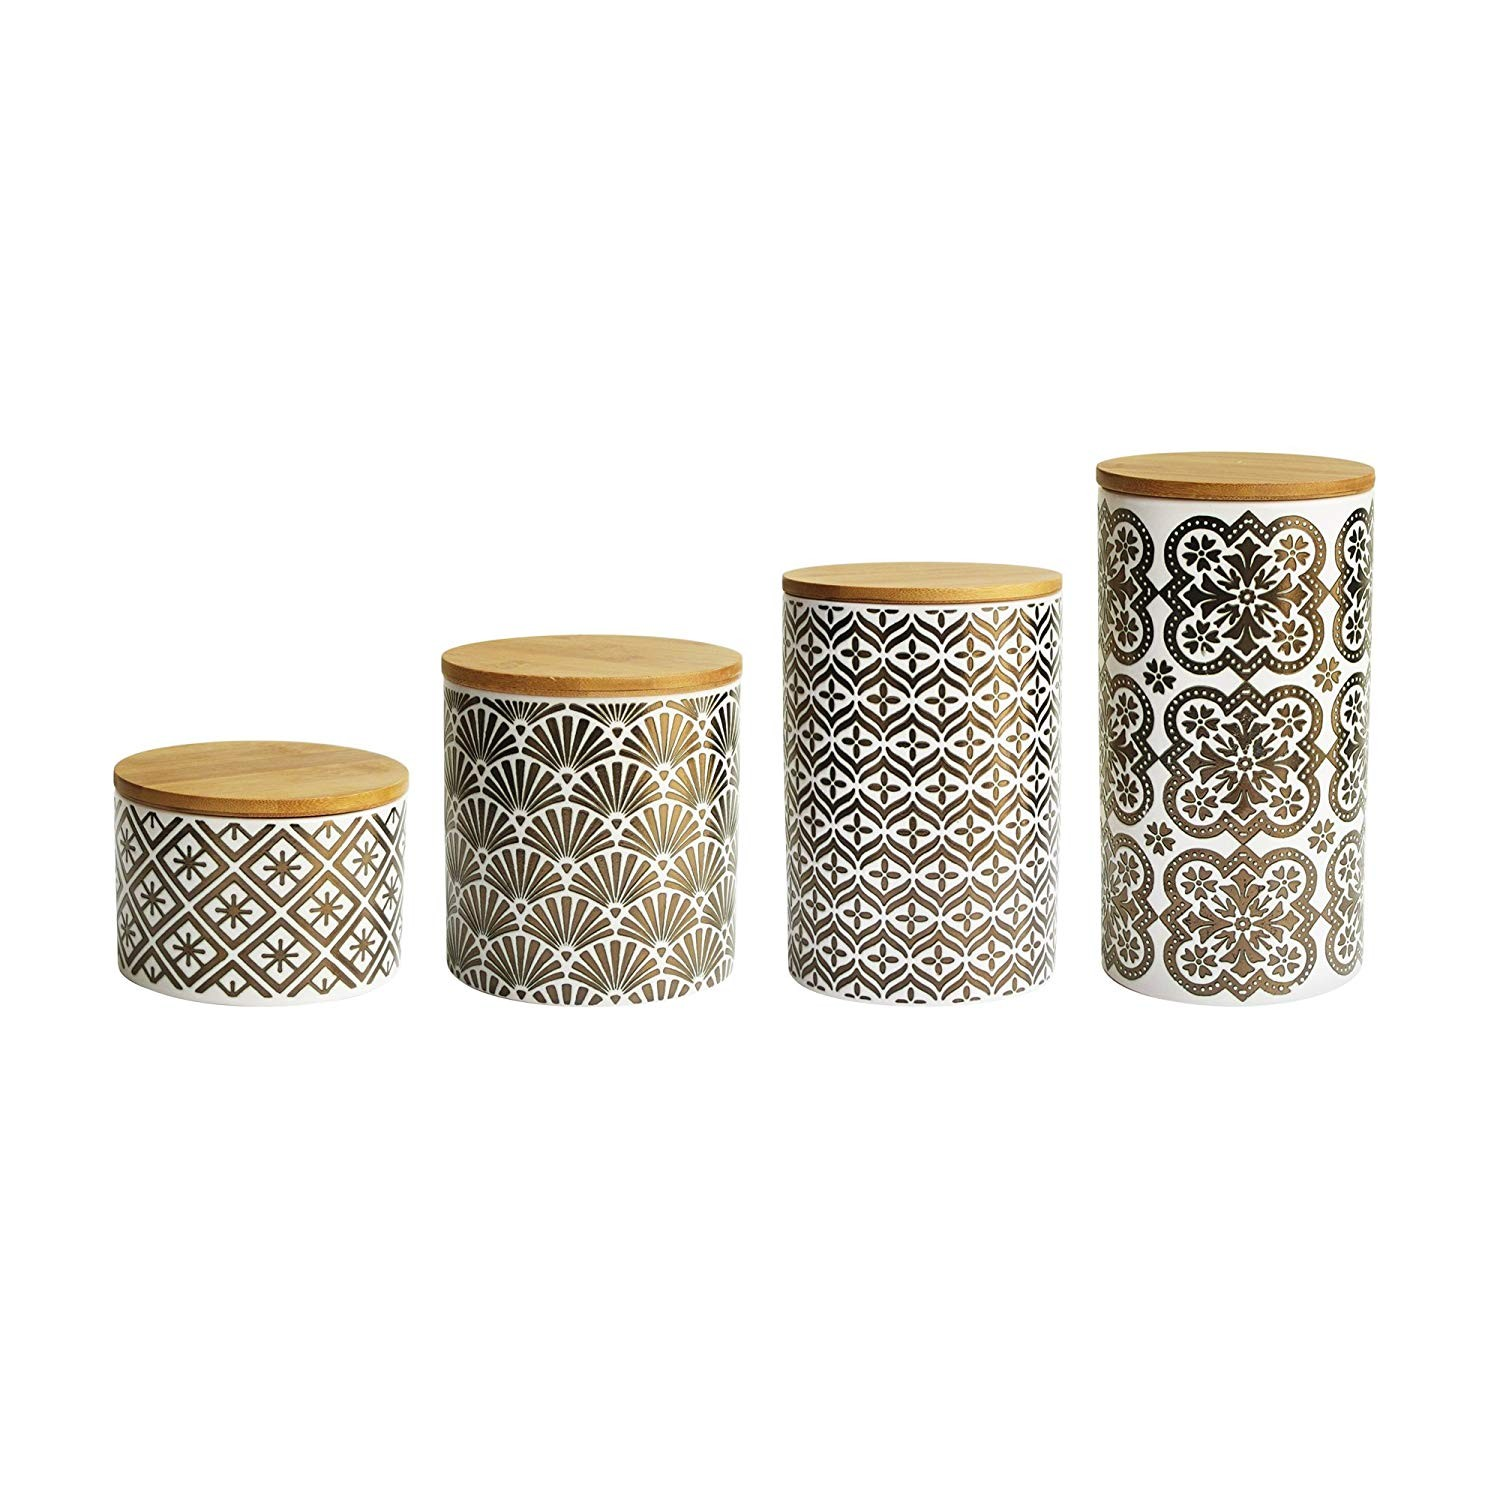 American Atelier 6477-CAN Metallic Canister Set, 17 x 4.2 x 8, Gold